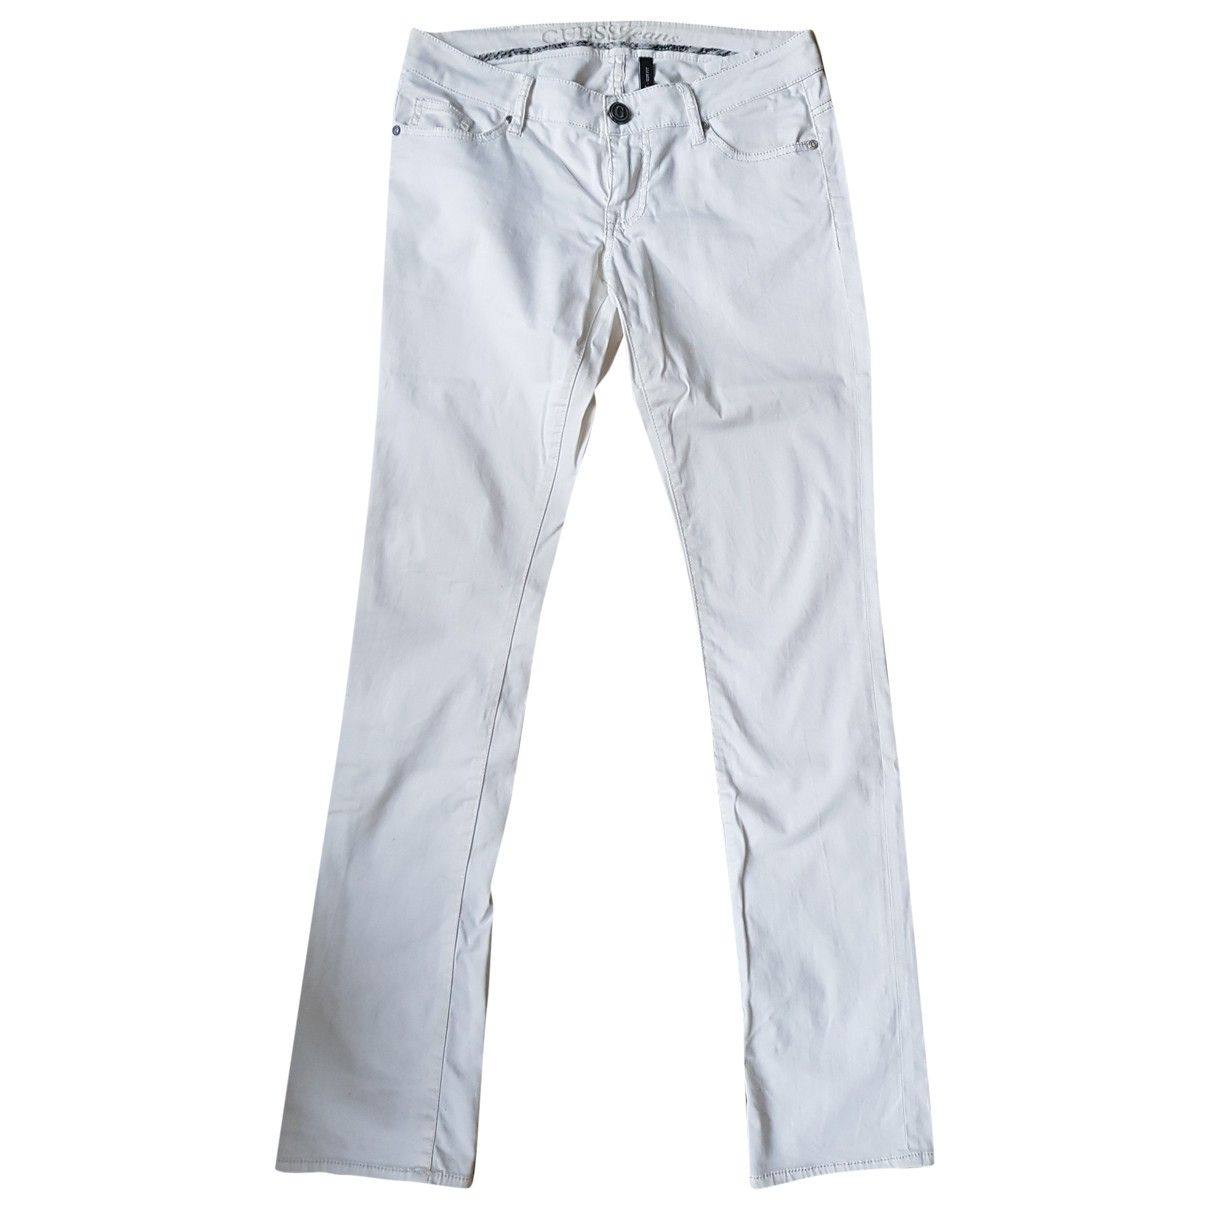 Guess \N White Cotton - elasthane Jeans for Women 28 US